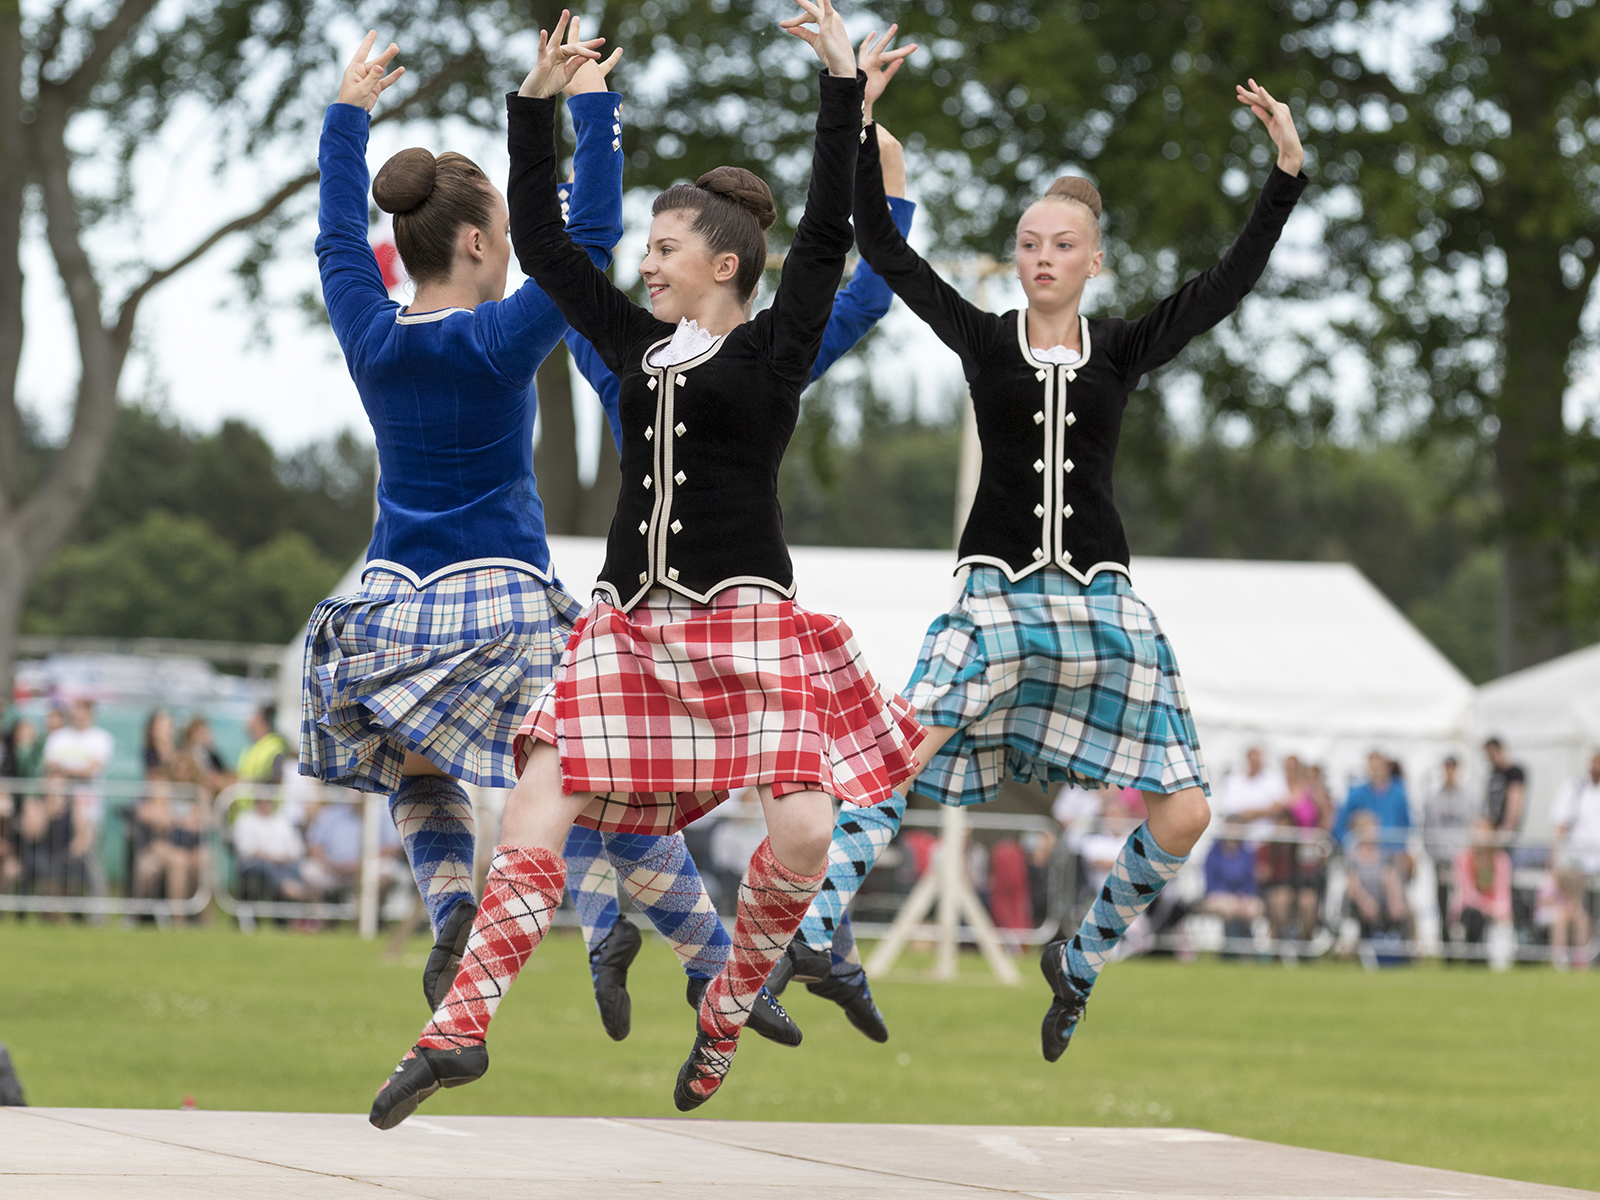 Highland Dancers at a Highland Games Event in  Scotland